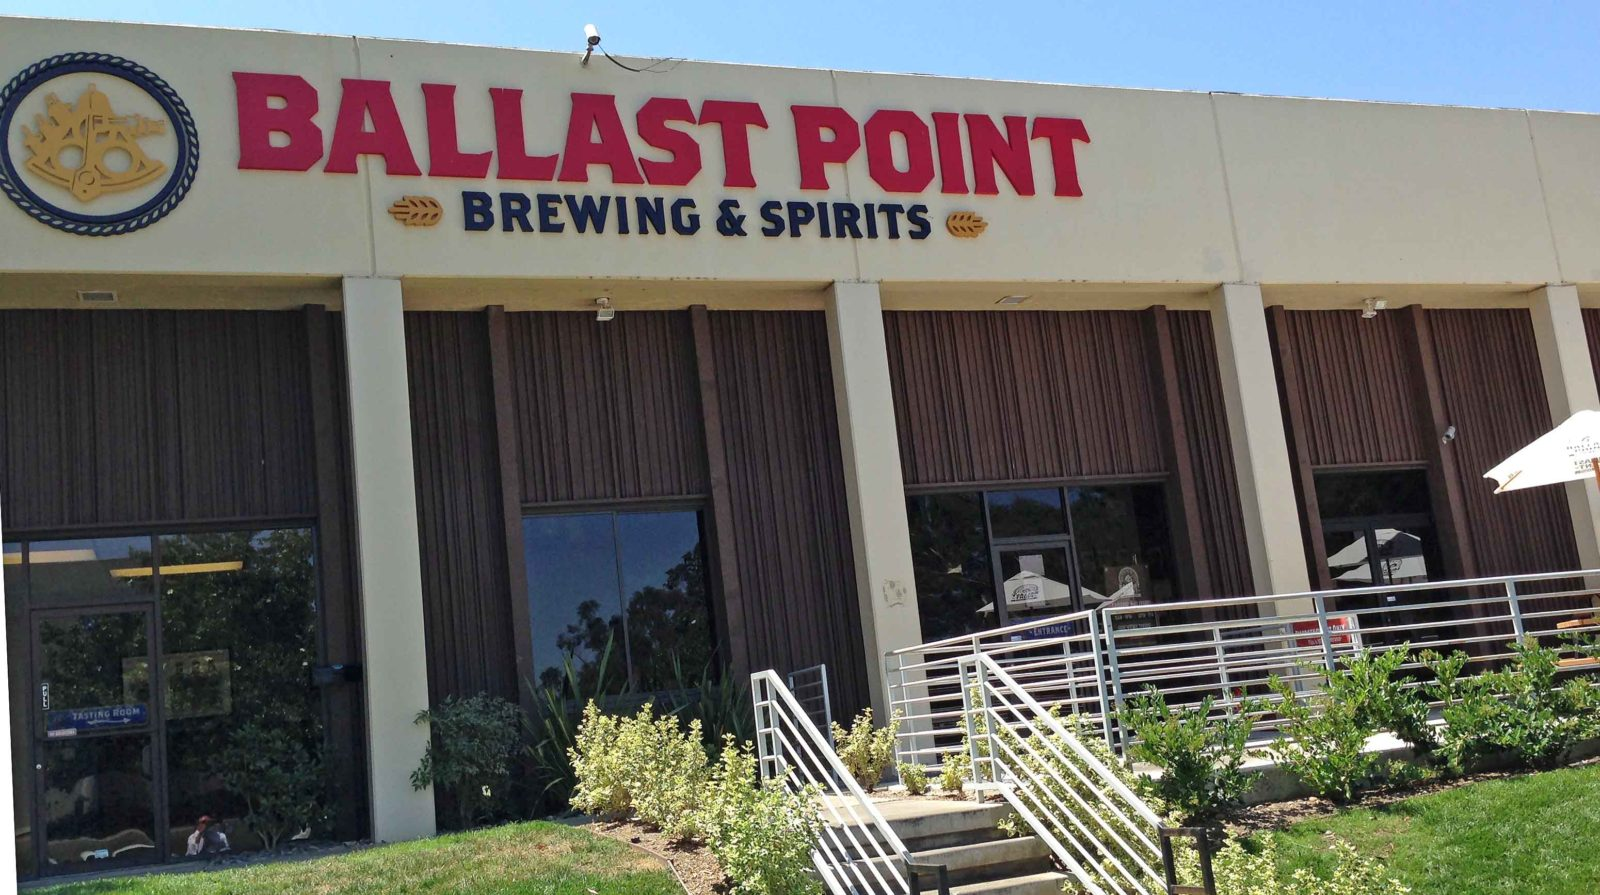 161. Ballast Point Brewery, San Diego CA 2013